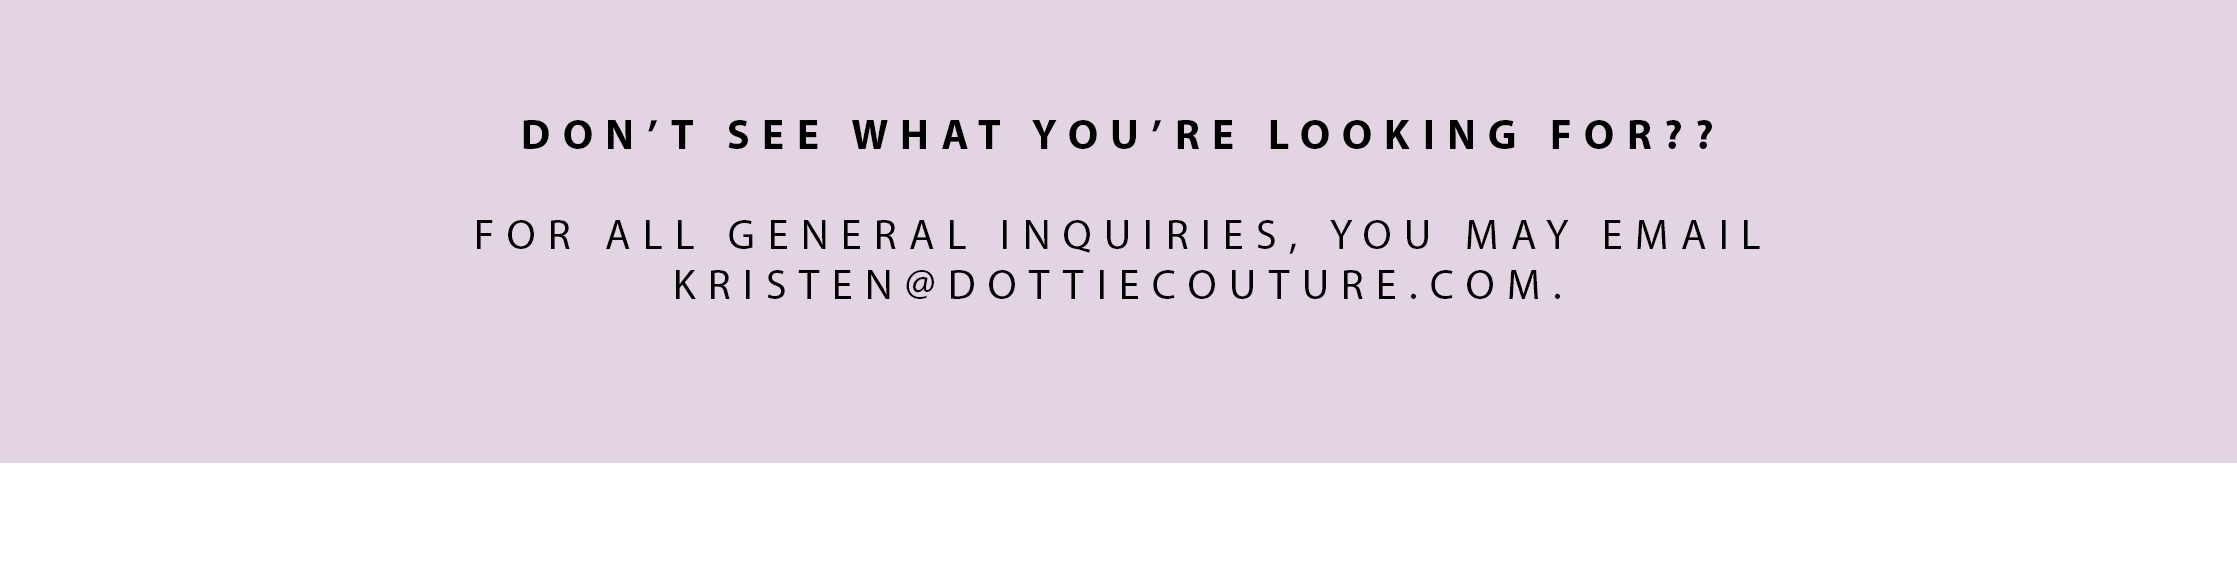 general-inquires-footer.png